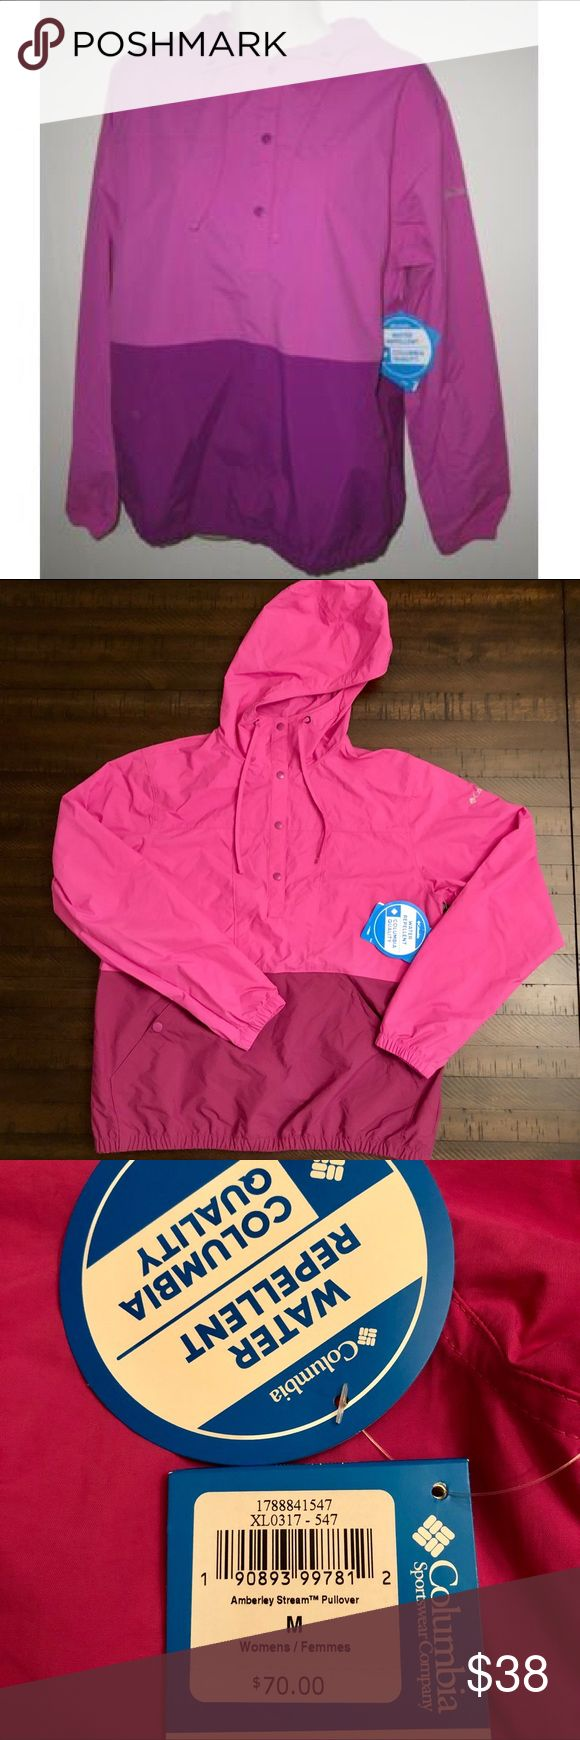 NWT Columbia Amberley Stream Hood Pullover Jacket New with ...